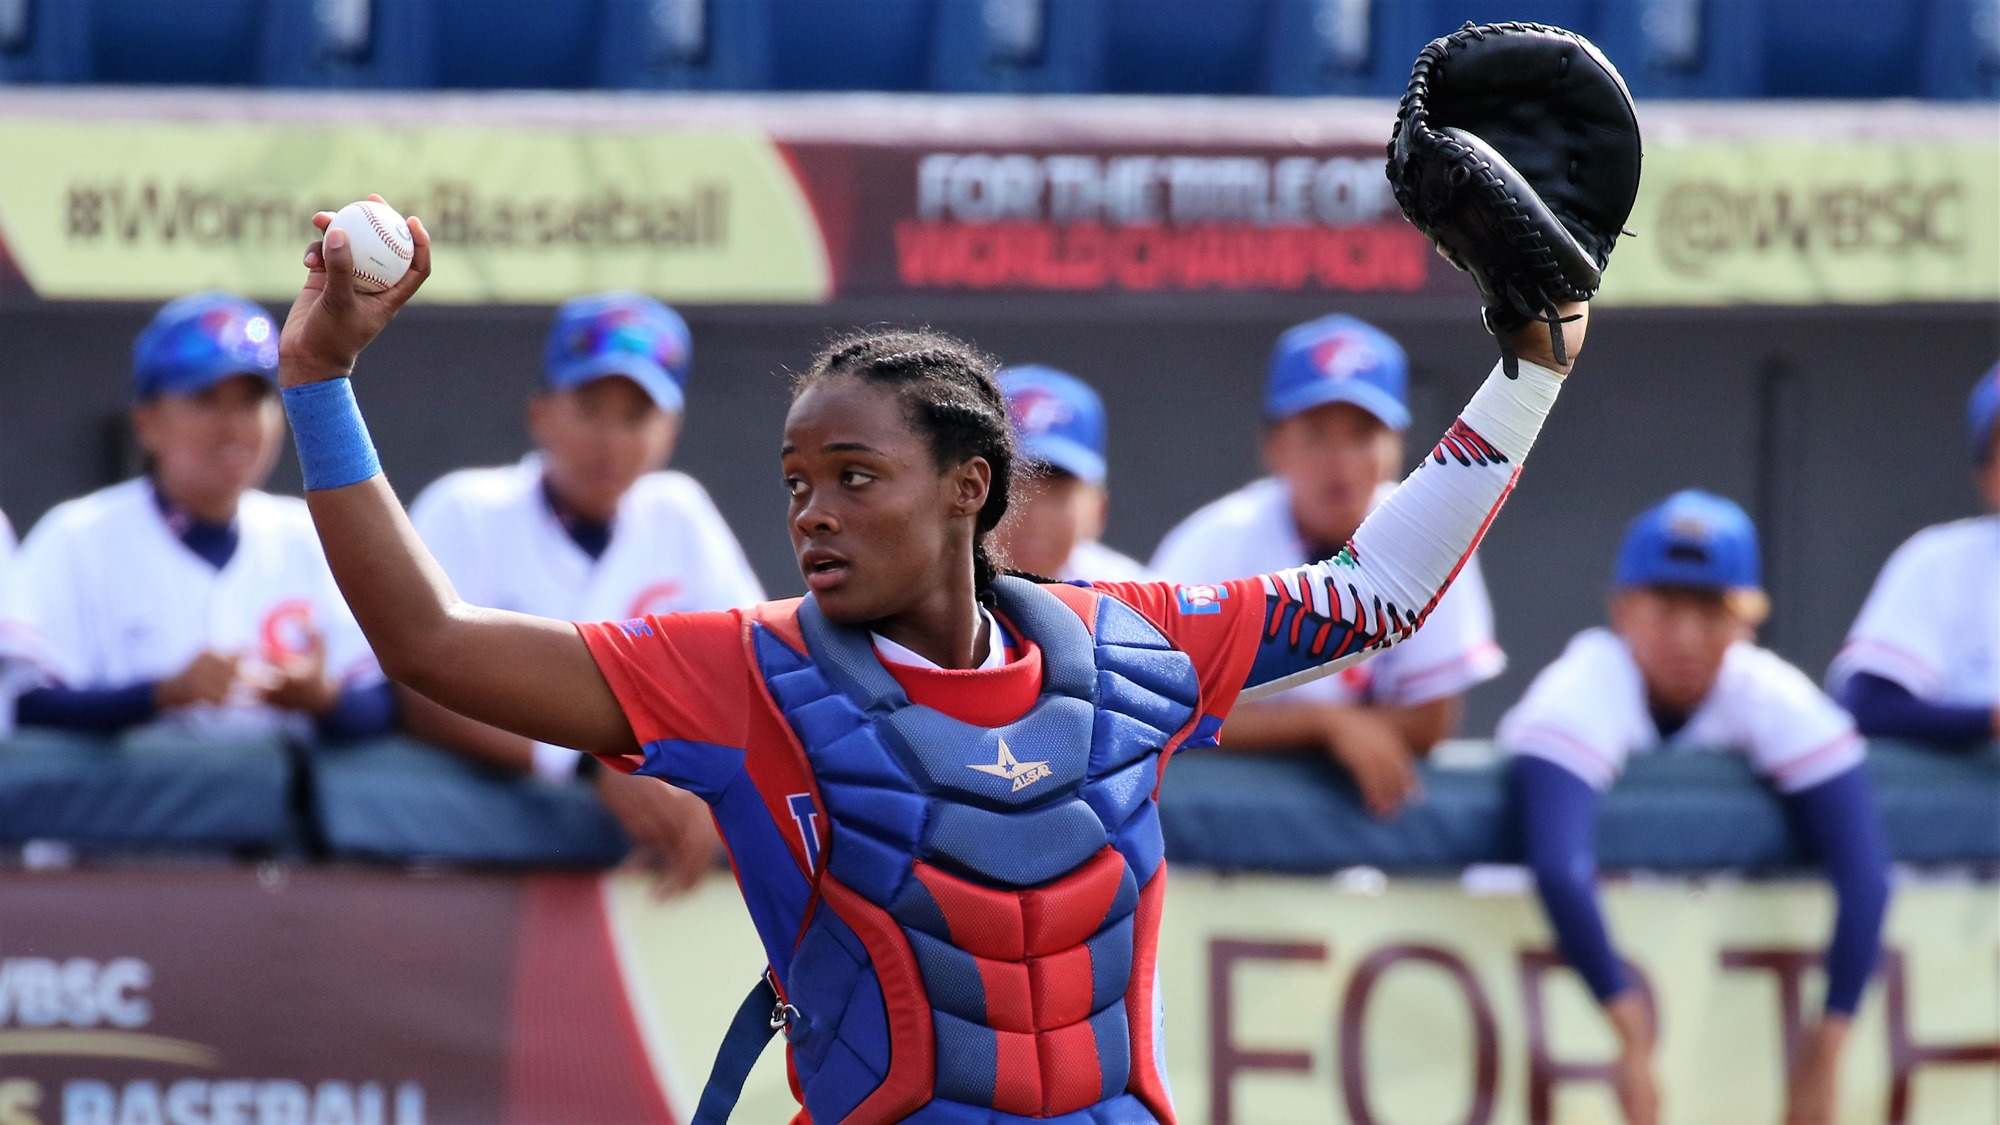 Noelia Moreno, the catcher for the Dominican Republic